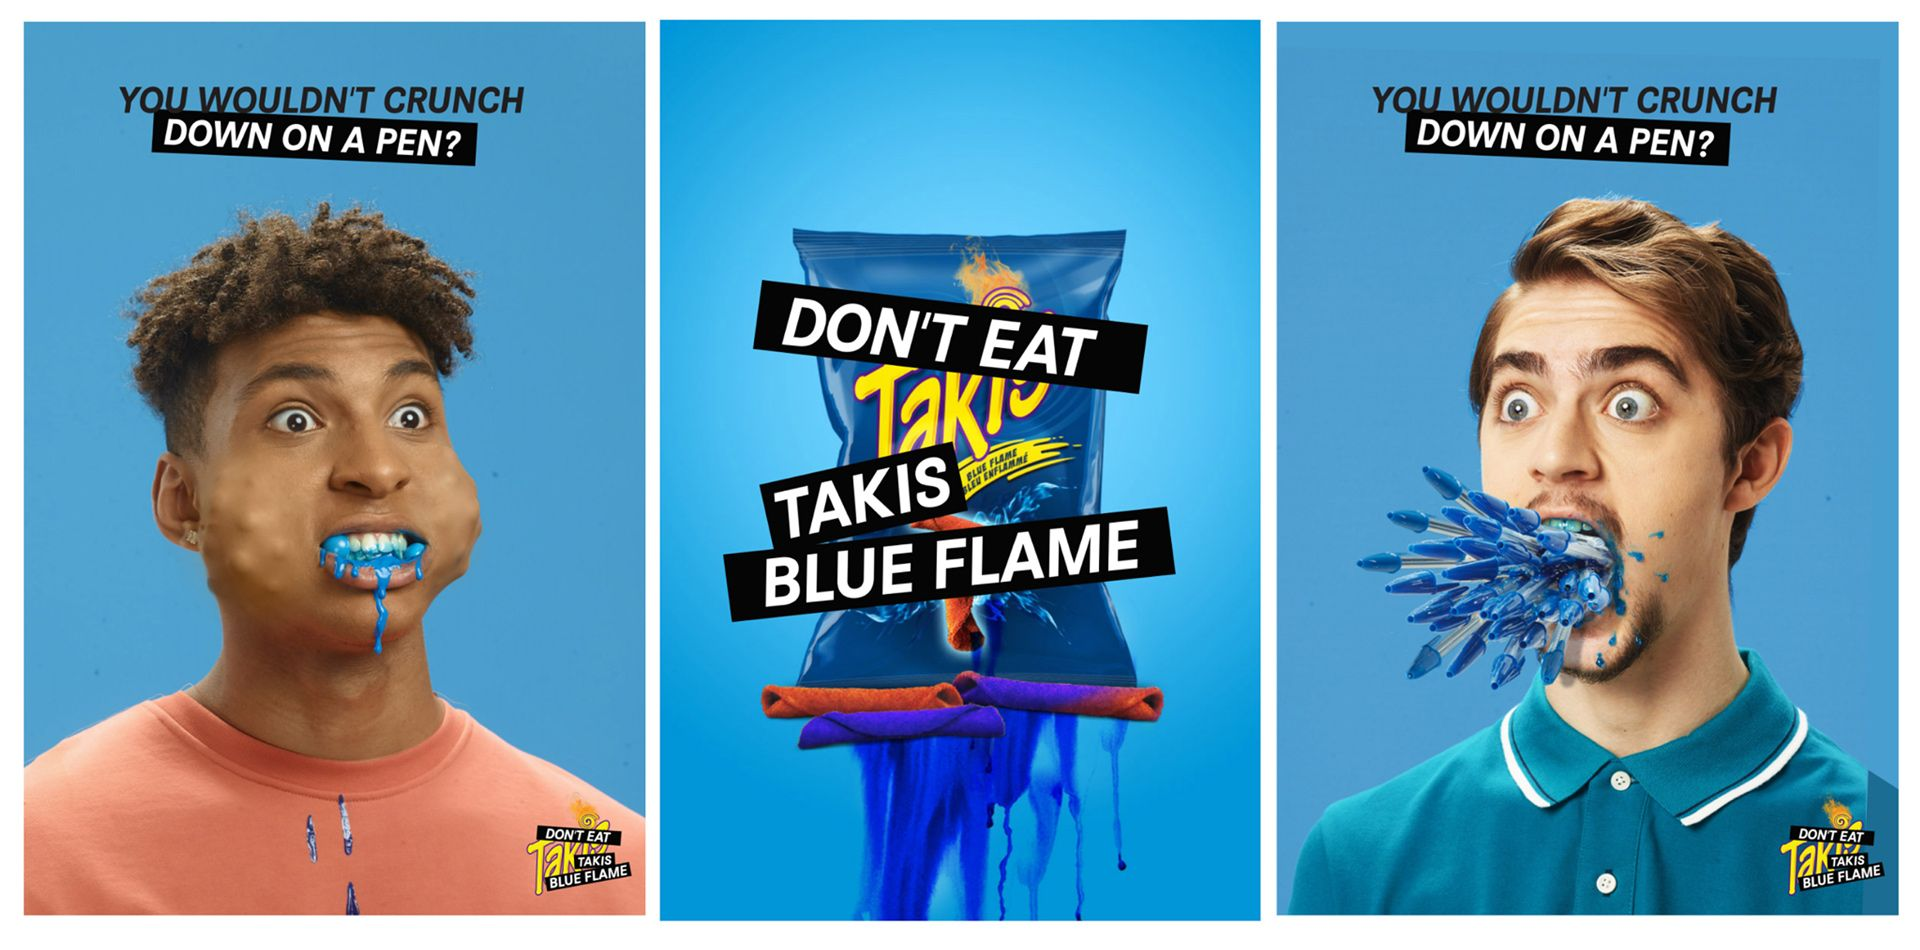 Simon Duhamel's campaign for Takis Blue Flame with Cossette